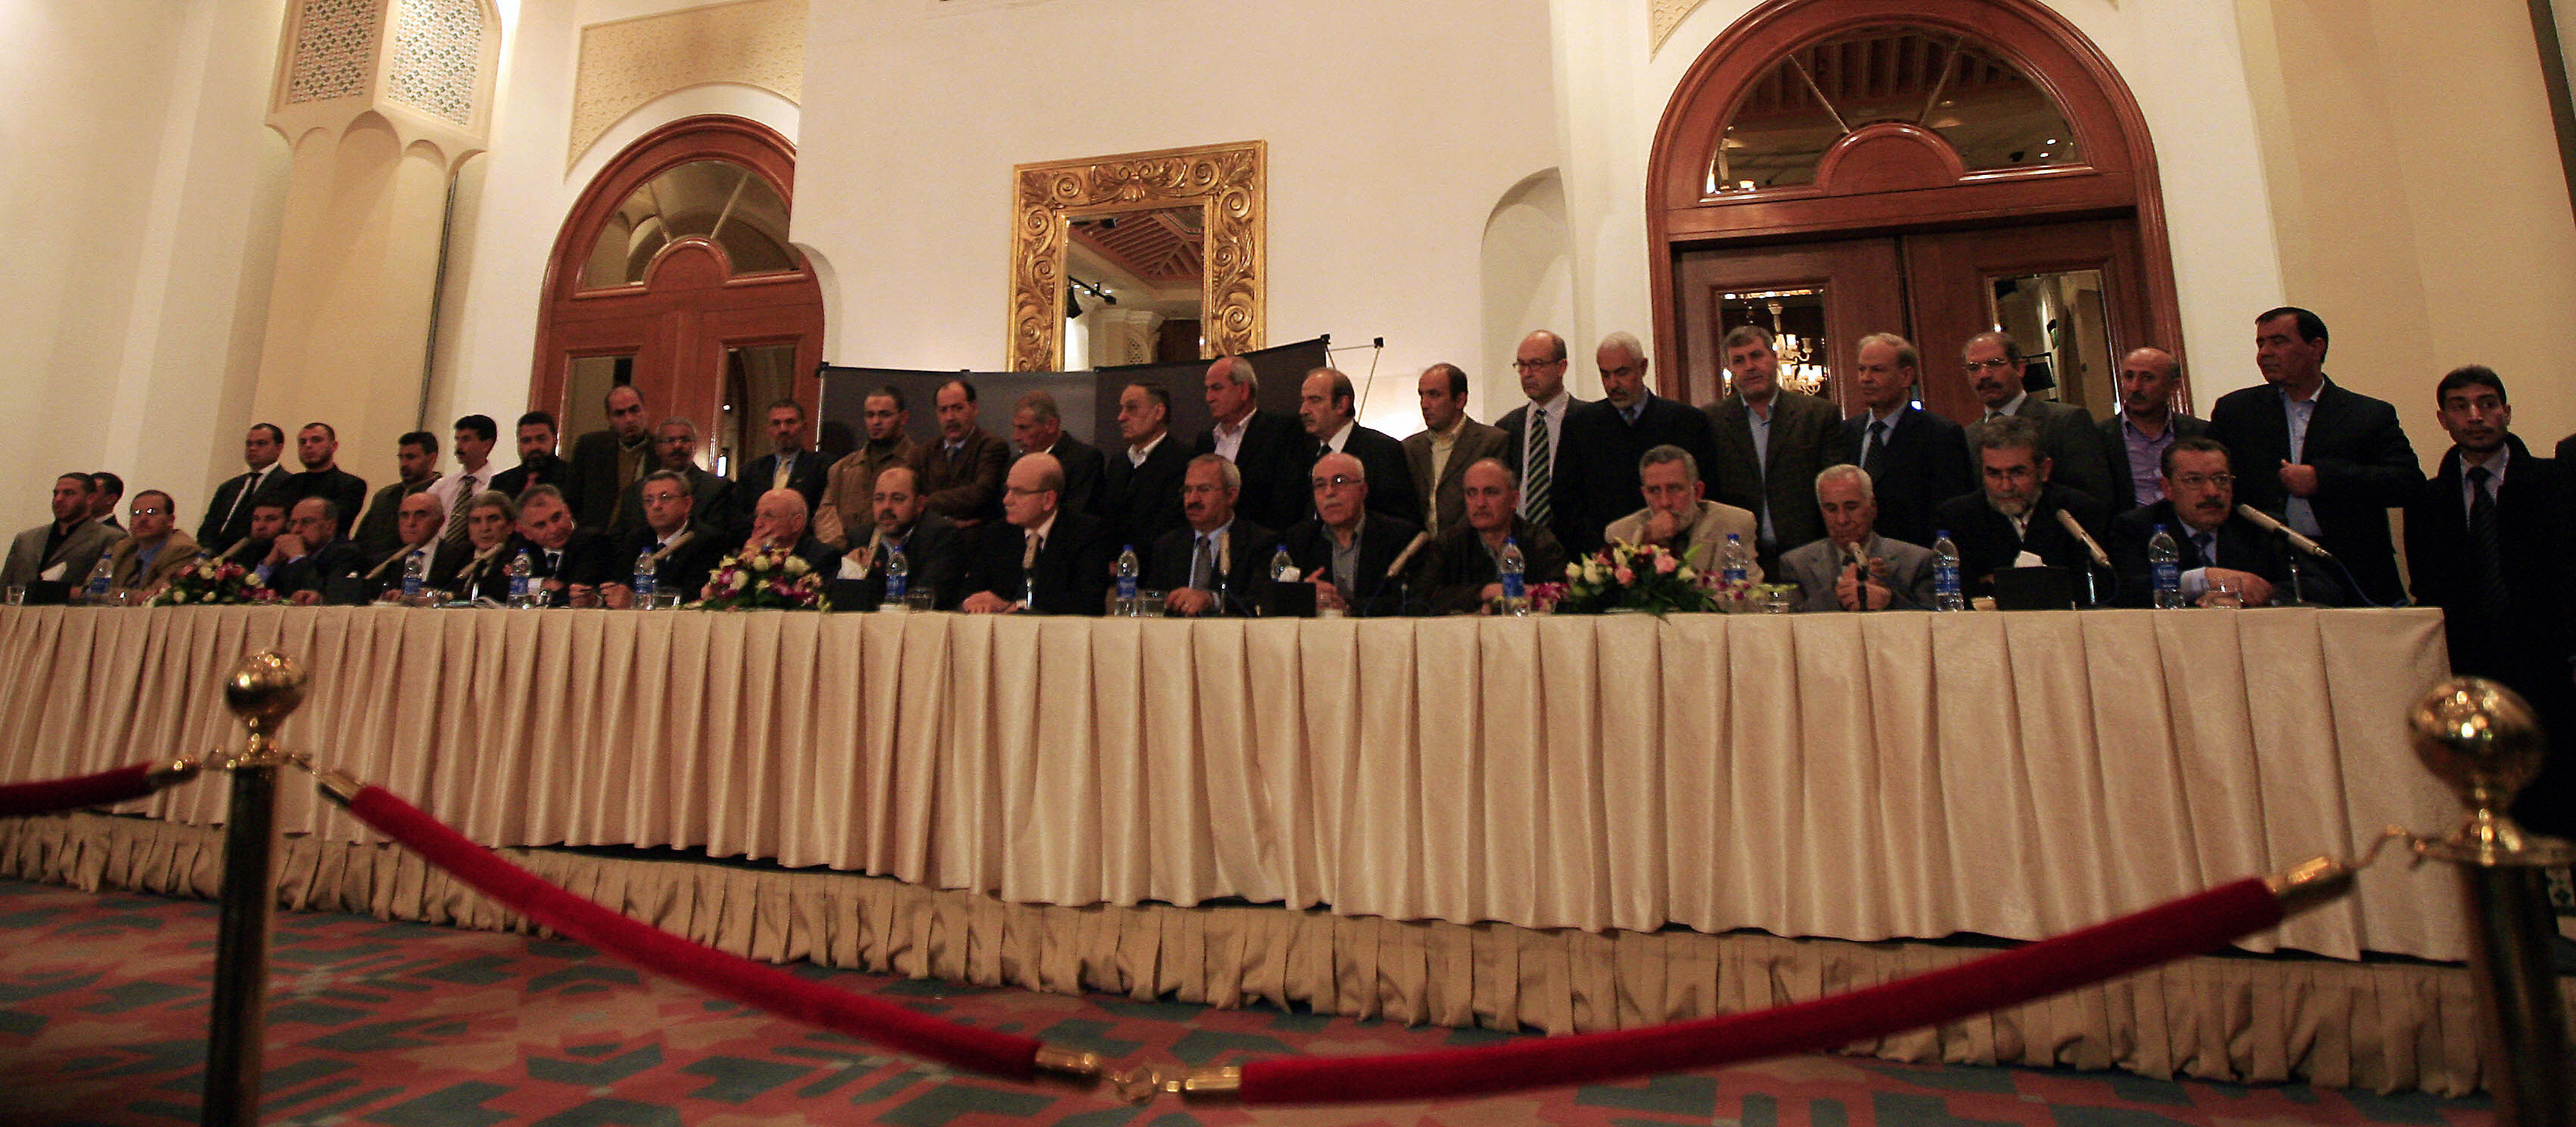 KHALED DESOUKI/AFP/Getty Images. Leaders of rival Palestinian factions discuss the results of reconciliation talks in Cairo, Egypt, on Thursday.